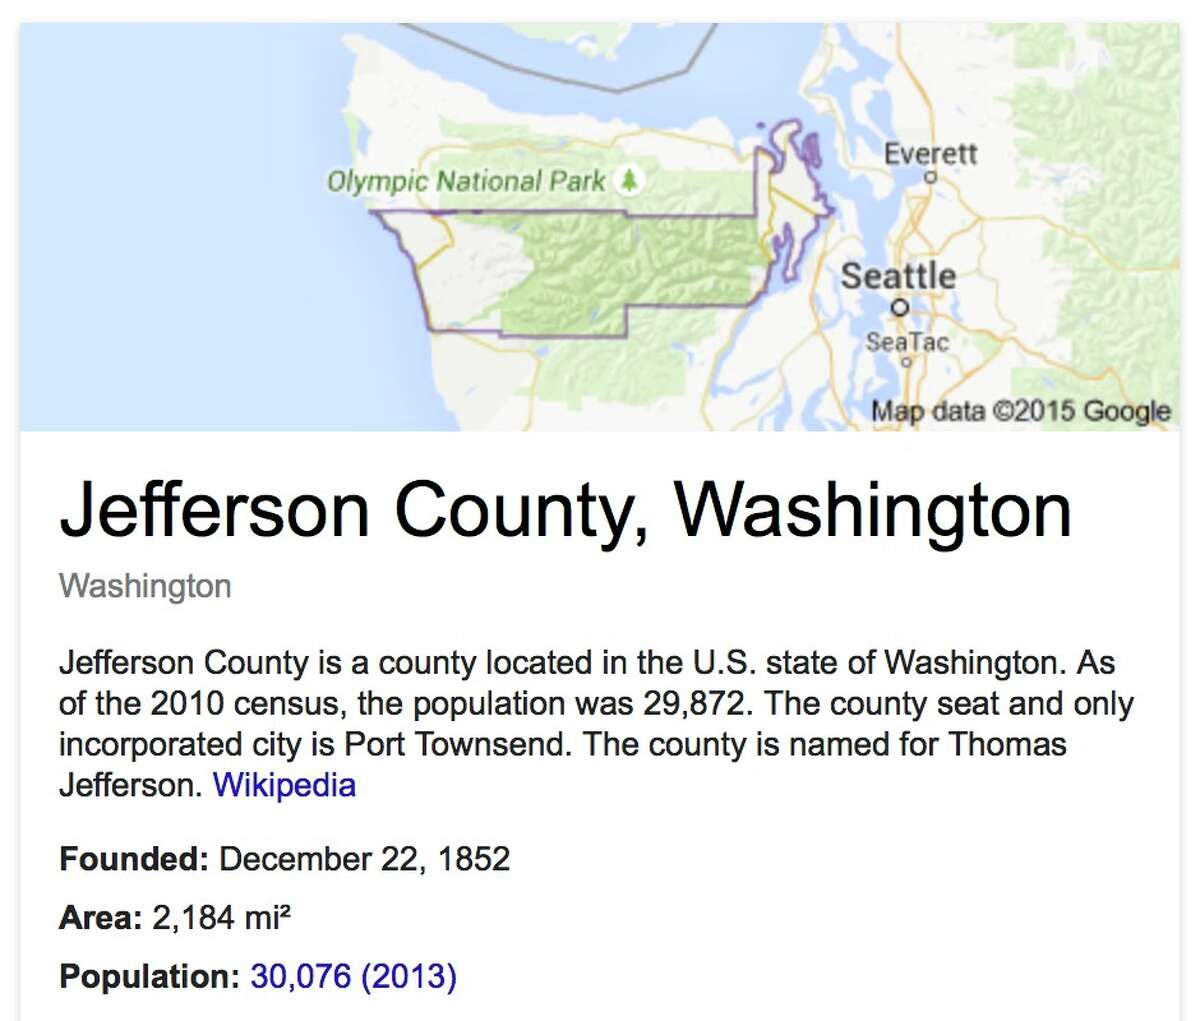 Jefferson: Total sales: $1,530,906 - Per capita sales: $51.23 - Average sales among retailers: $765,453 - Number of retailers: 2